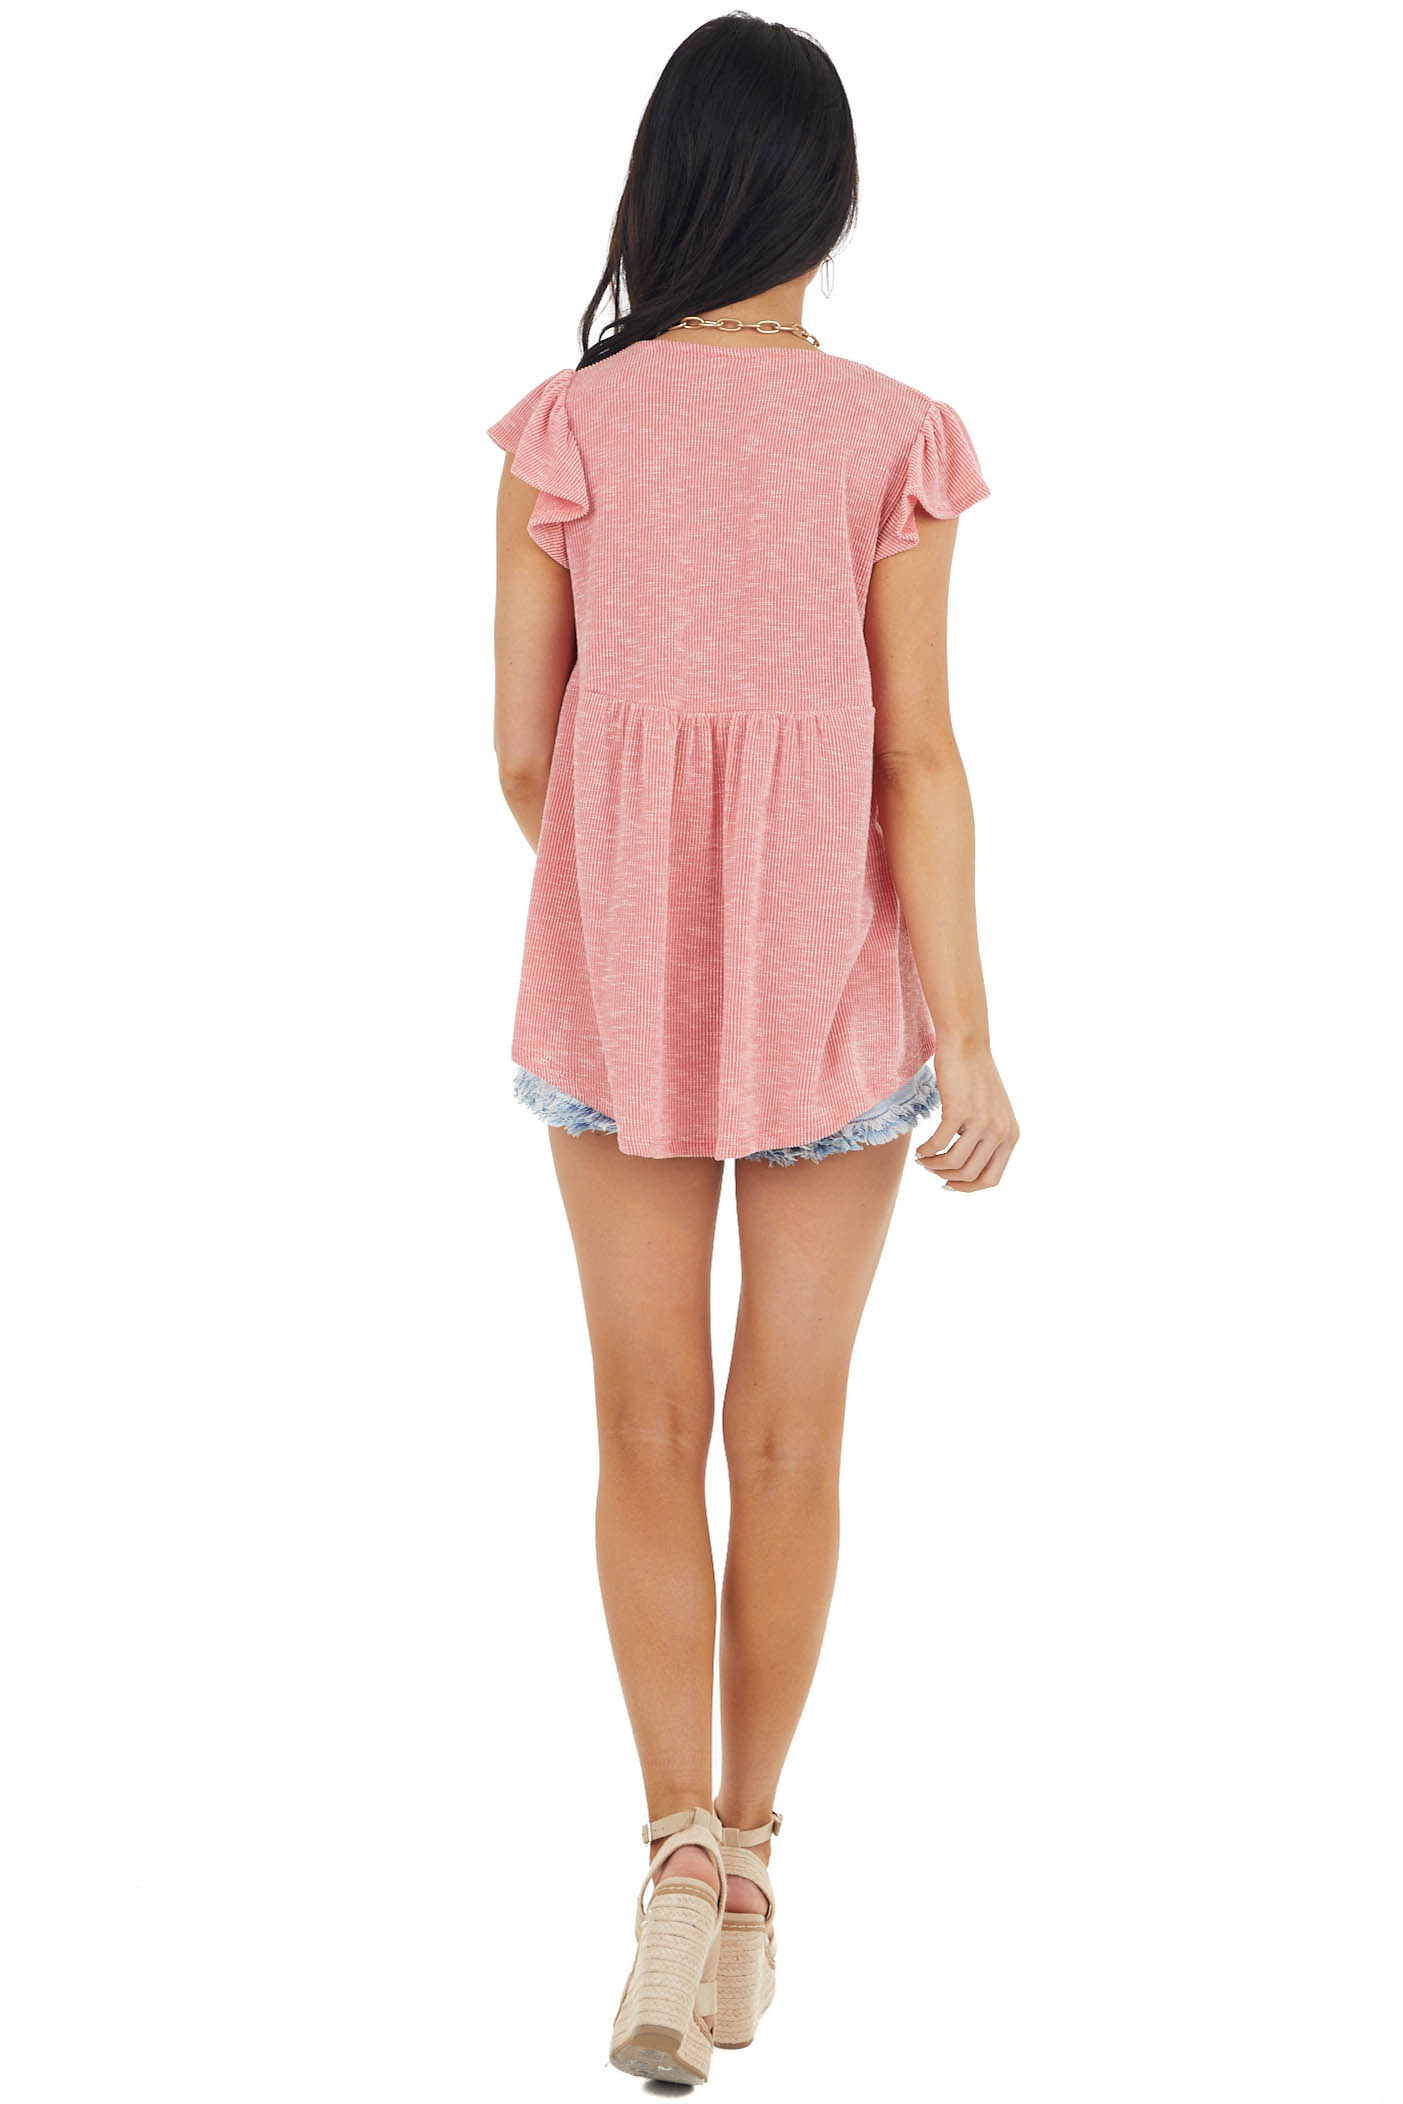 Coral and Ivory Two Tone Ribbed Short Flutter Sleeve Top